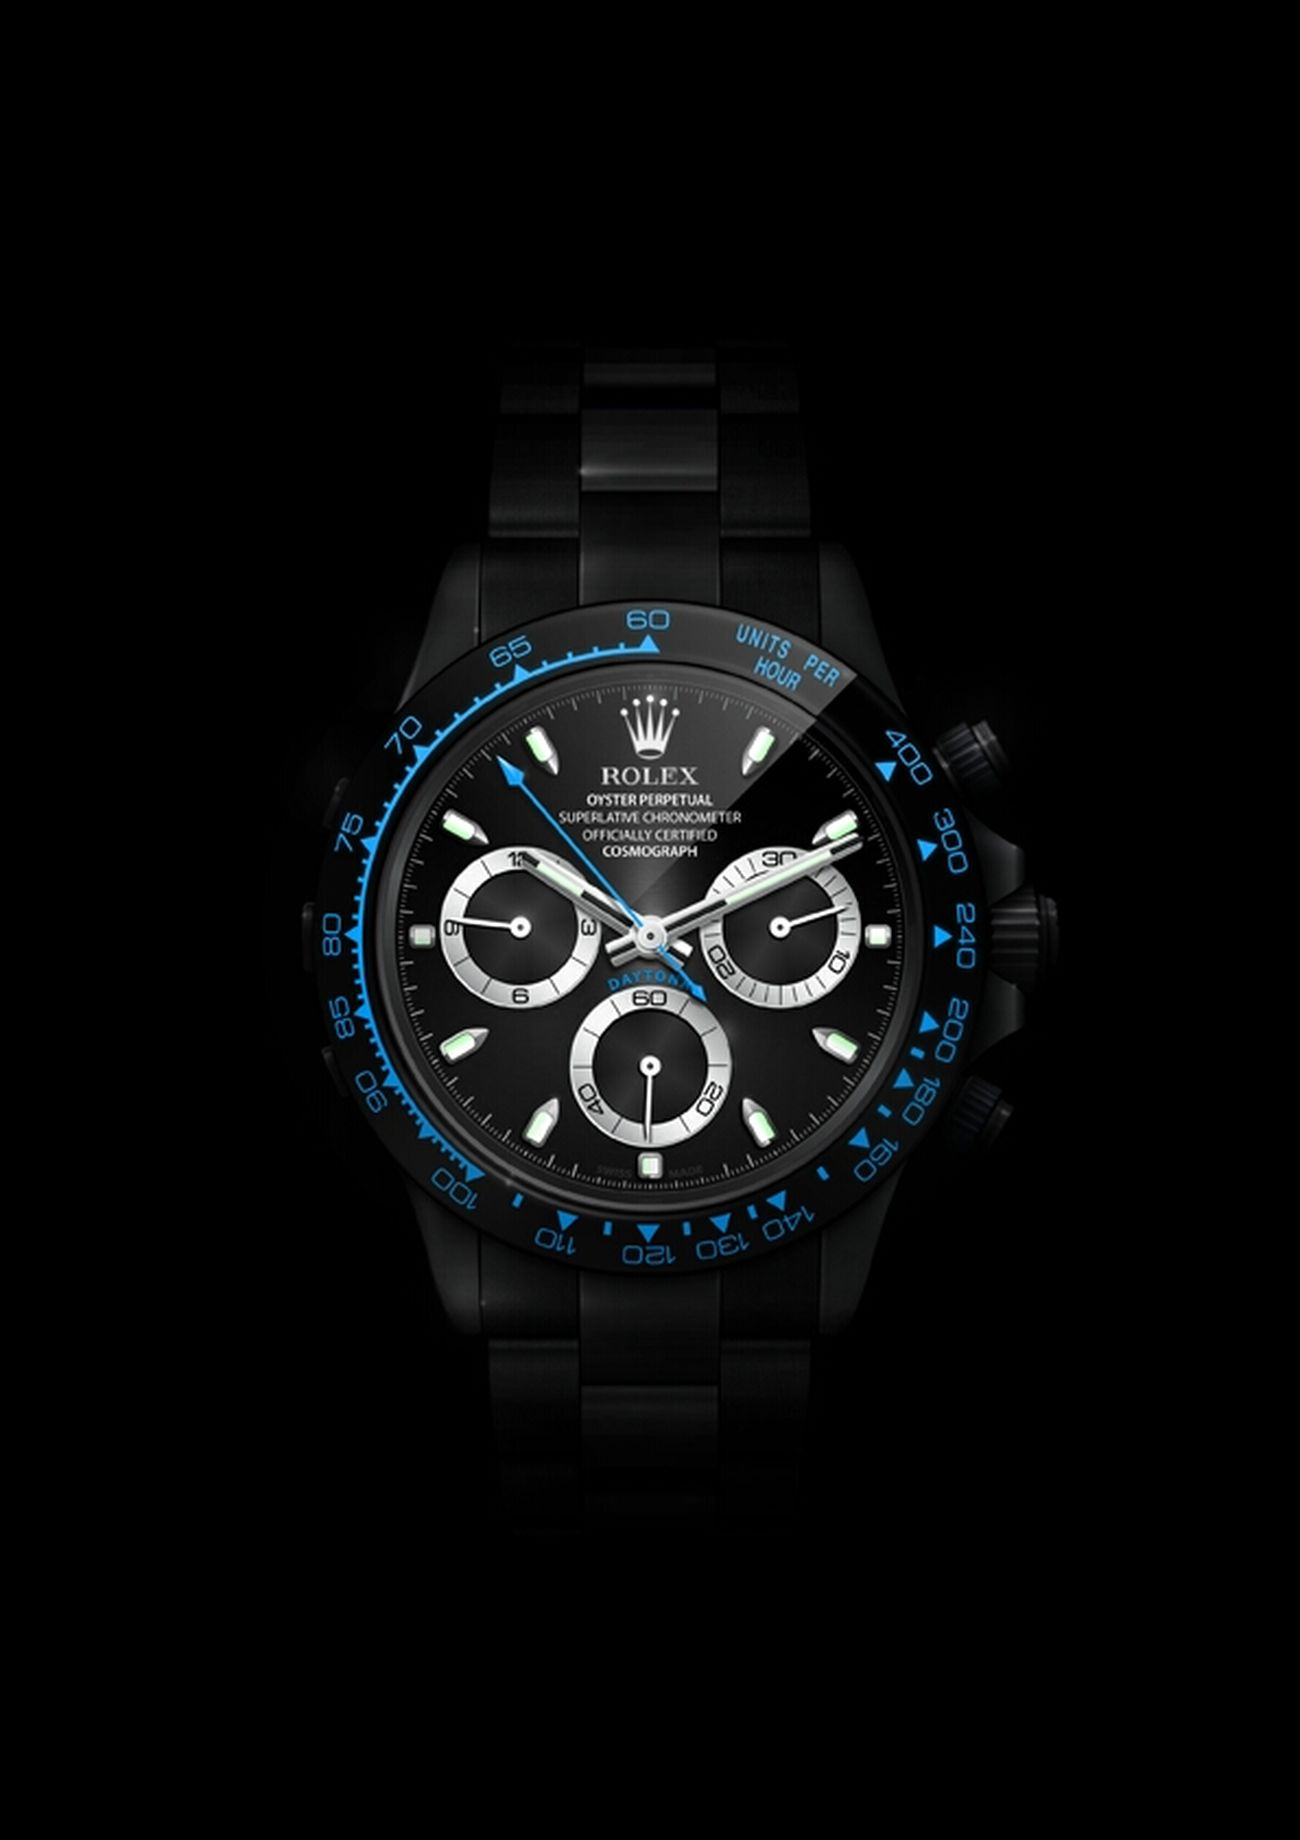 Watch Rolex Daytona BlackPearl - Digital Rolex Daytona BlackPearl